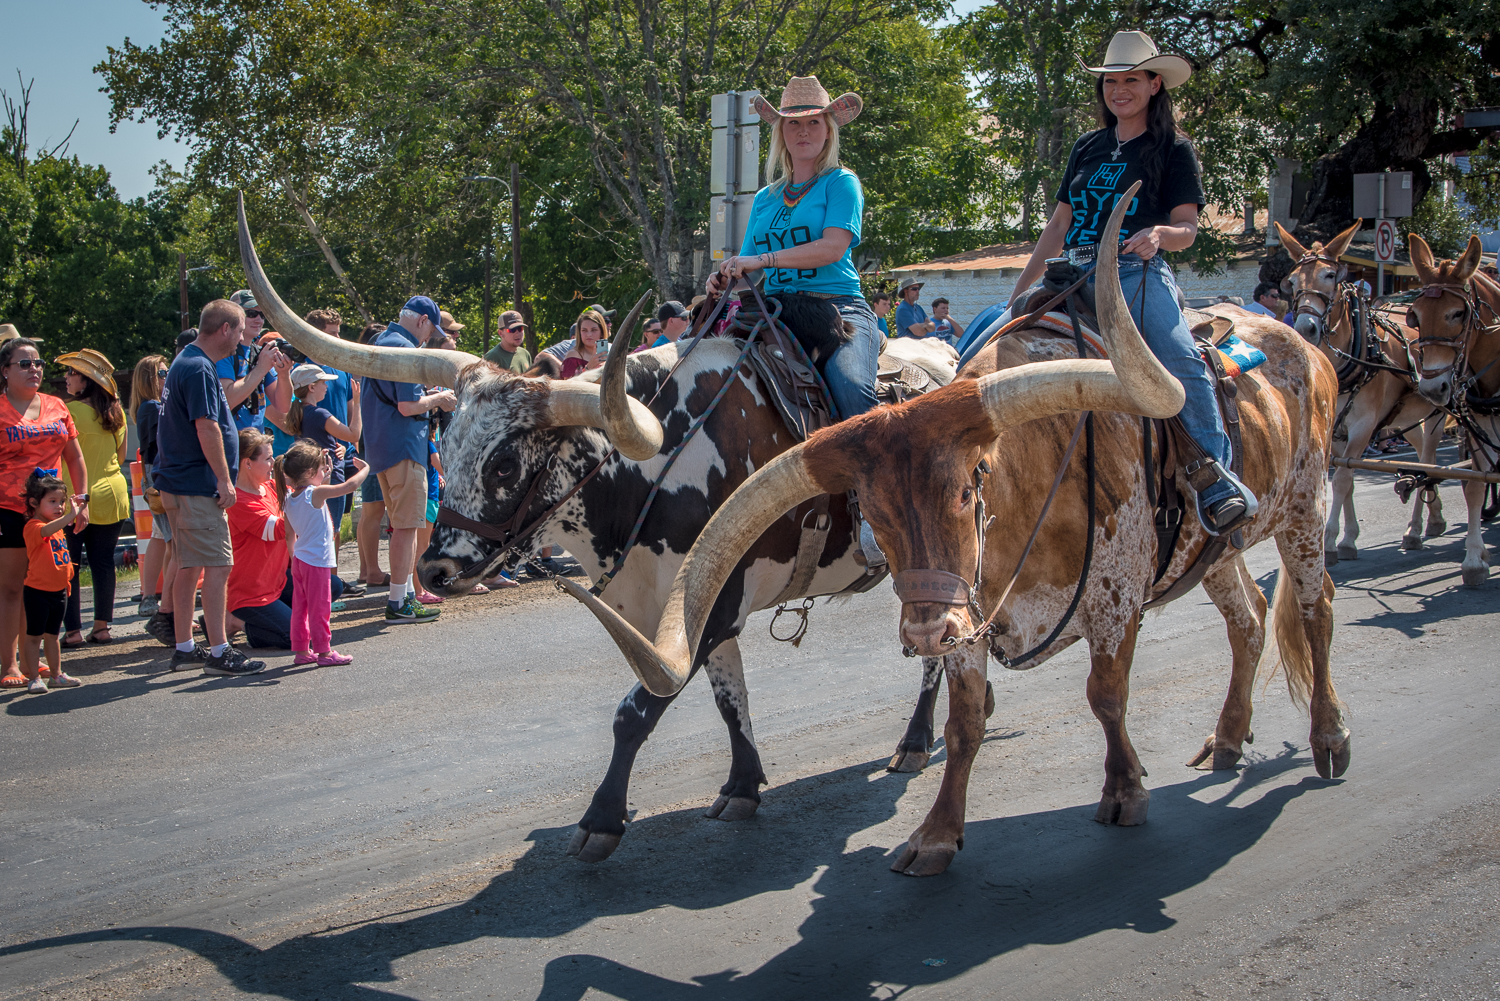 © Ayash Basu. Women continue to be a significant force in both ranch and professional rodeos. Many women wranglers have regular jobs — nurses, accountants, entrepreneurs — in addition to cattle responsibilities. Here, these women lead a section of Bandera's cattle parade, a popular event held every Labor Day weekend. Bandera 2017.